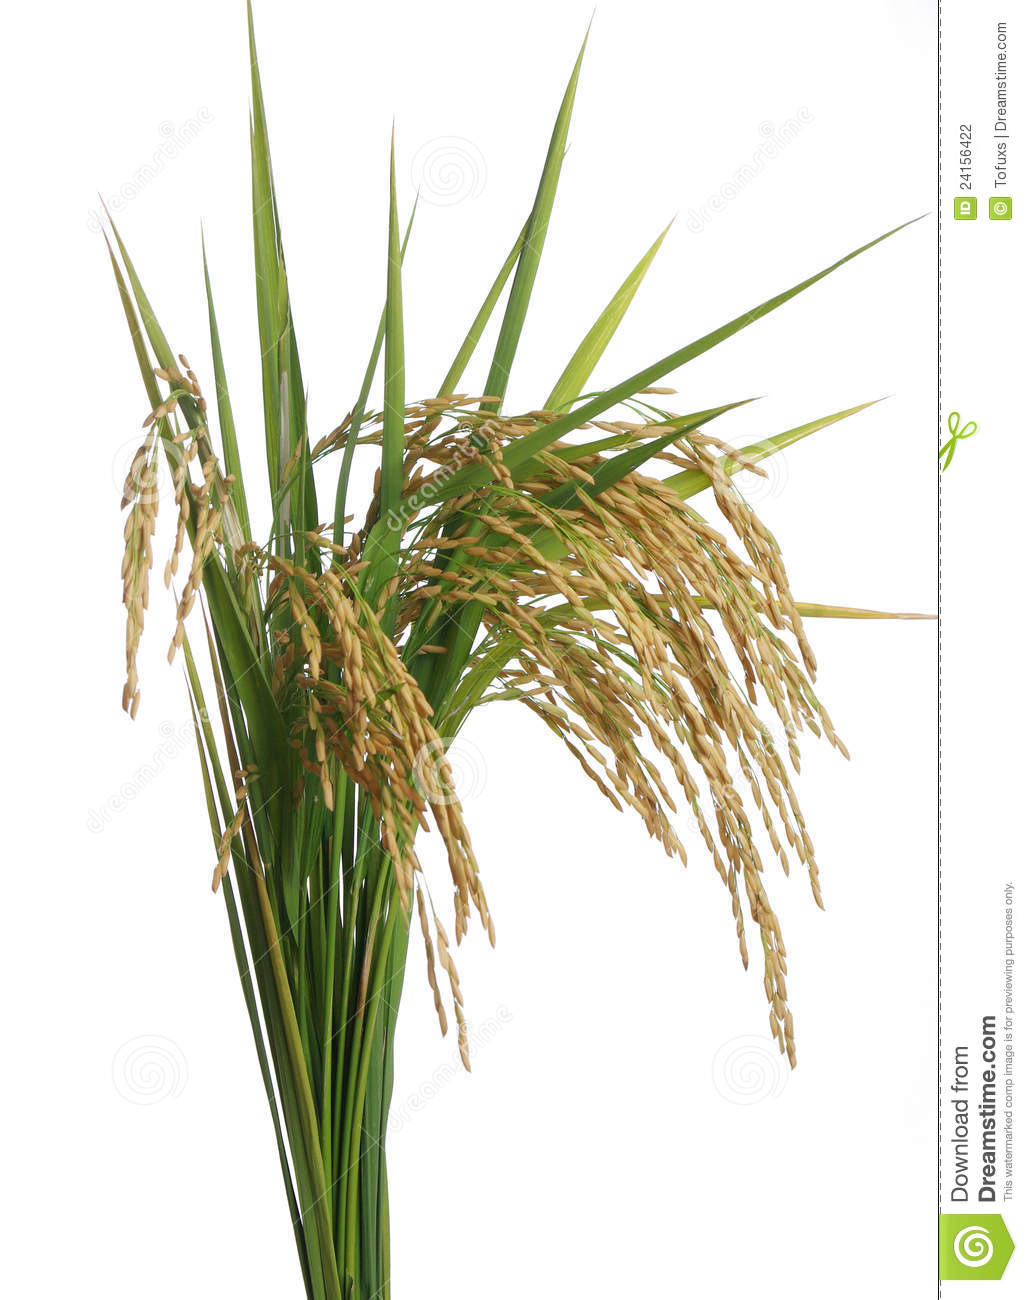 Rice paddy clipart.